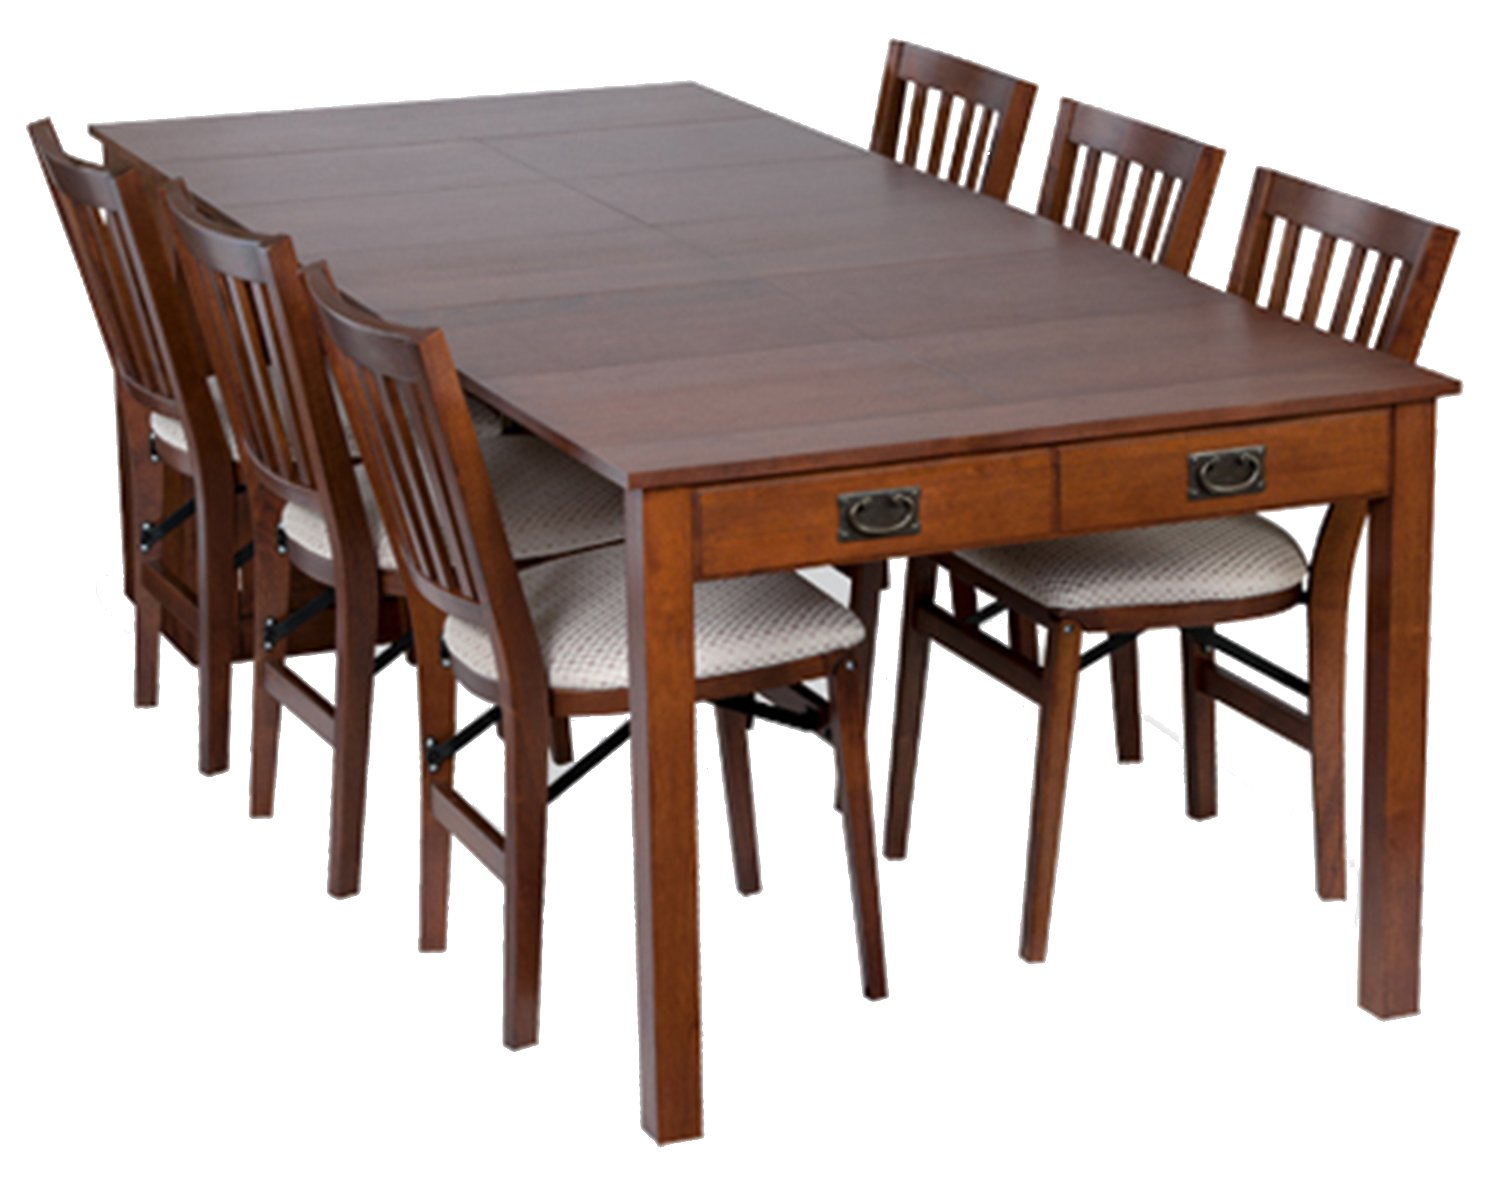 Stakmore Traditional Expanding Table Finish, Fruitwood by MECO